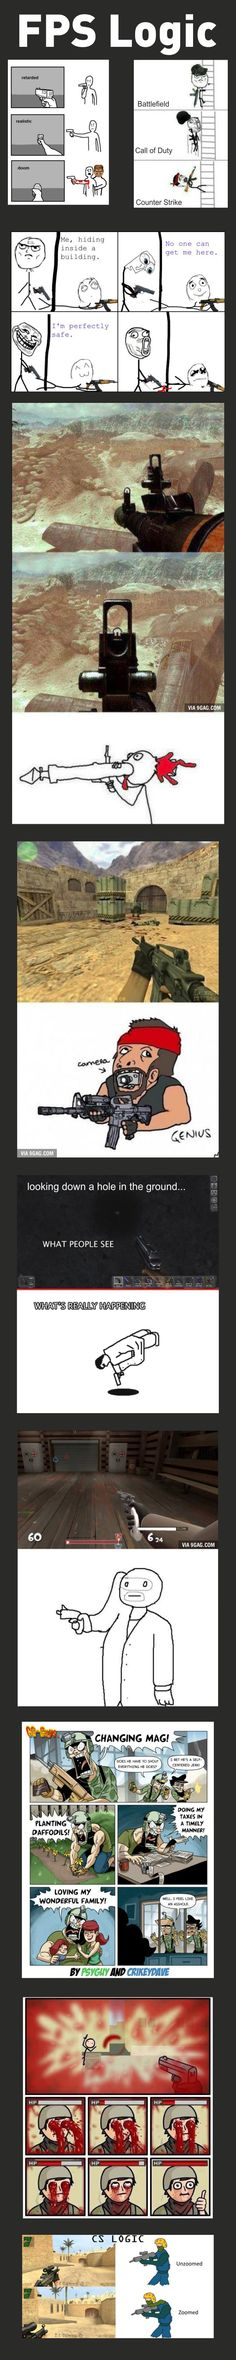 FPS Logic - The logic in First person shooter games is simply hilarious. Video Game Logic, Video Games Funny, Funny Games, Memes Lol, Video Humour, Gaming Memes, Geek Culture, Funny Pins, Funny Stuff